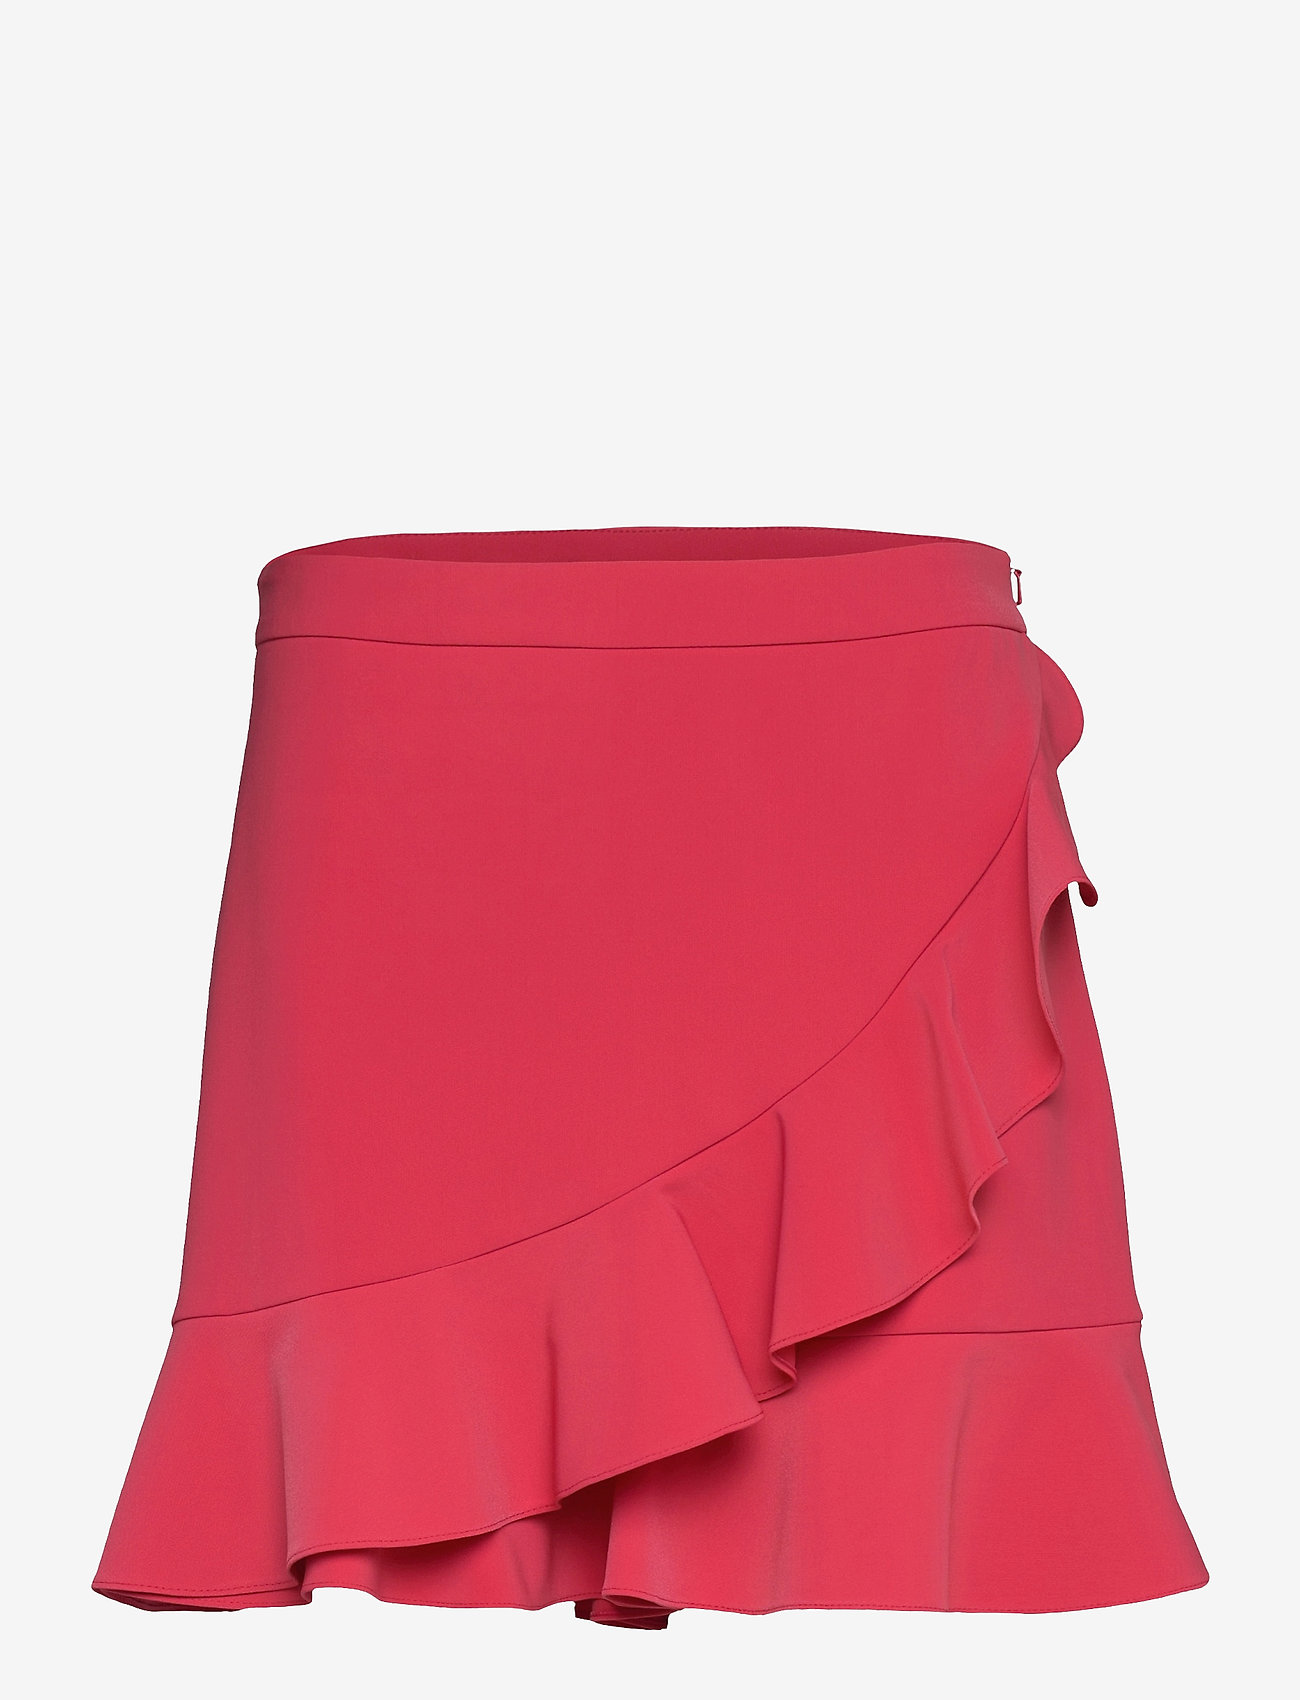 Boutique Moschino - Boutique Moschino TROUSERS - casual shorts - pink - 0